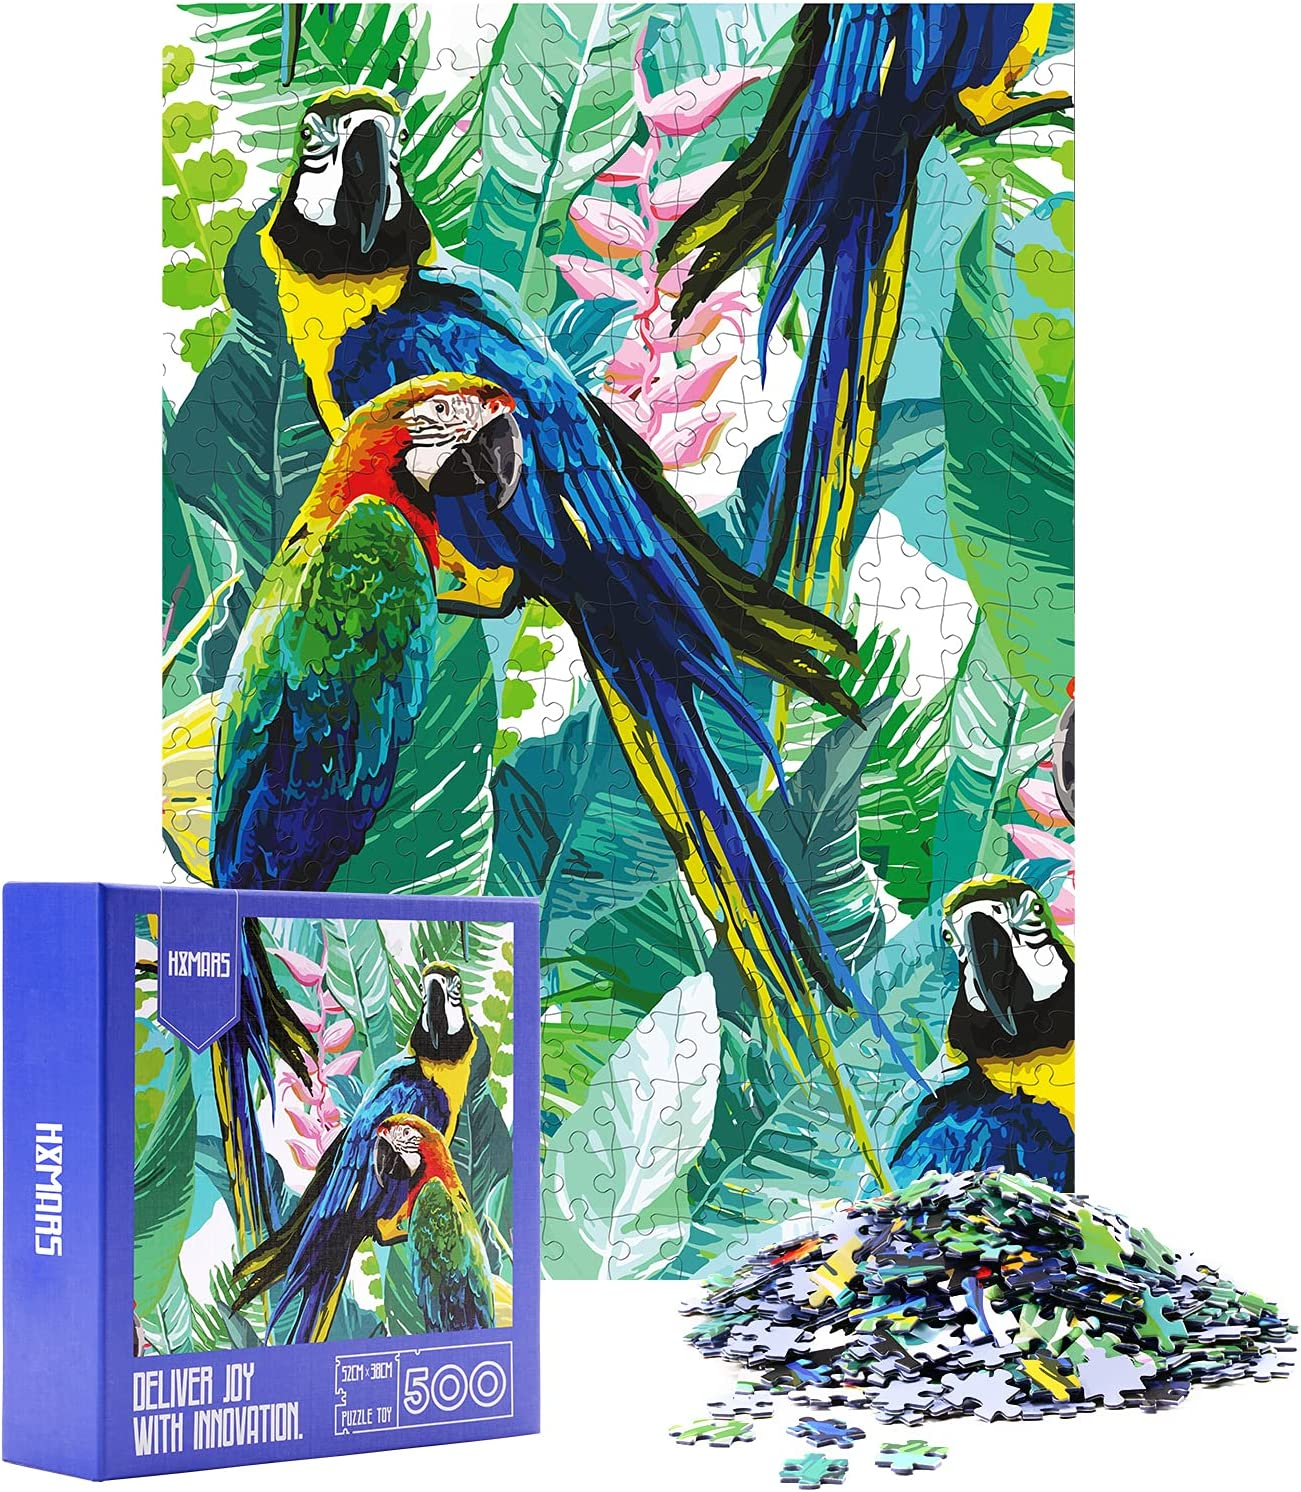 HXMARS Jigsaw Puzzles for Adults Parrot: 500 Piece Puzzles Game for Family-Parrot, Illustrated Art with Animals Garden Birds Cool and Challenging, 20